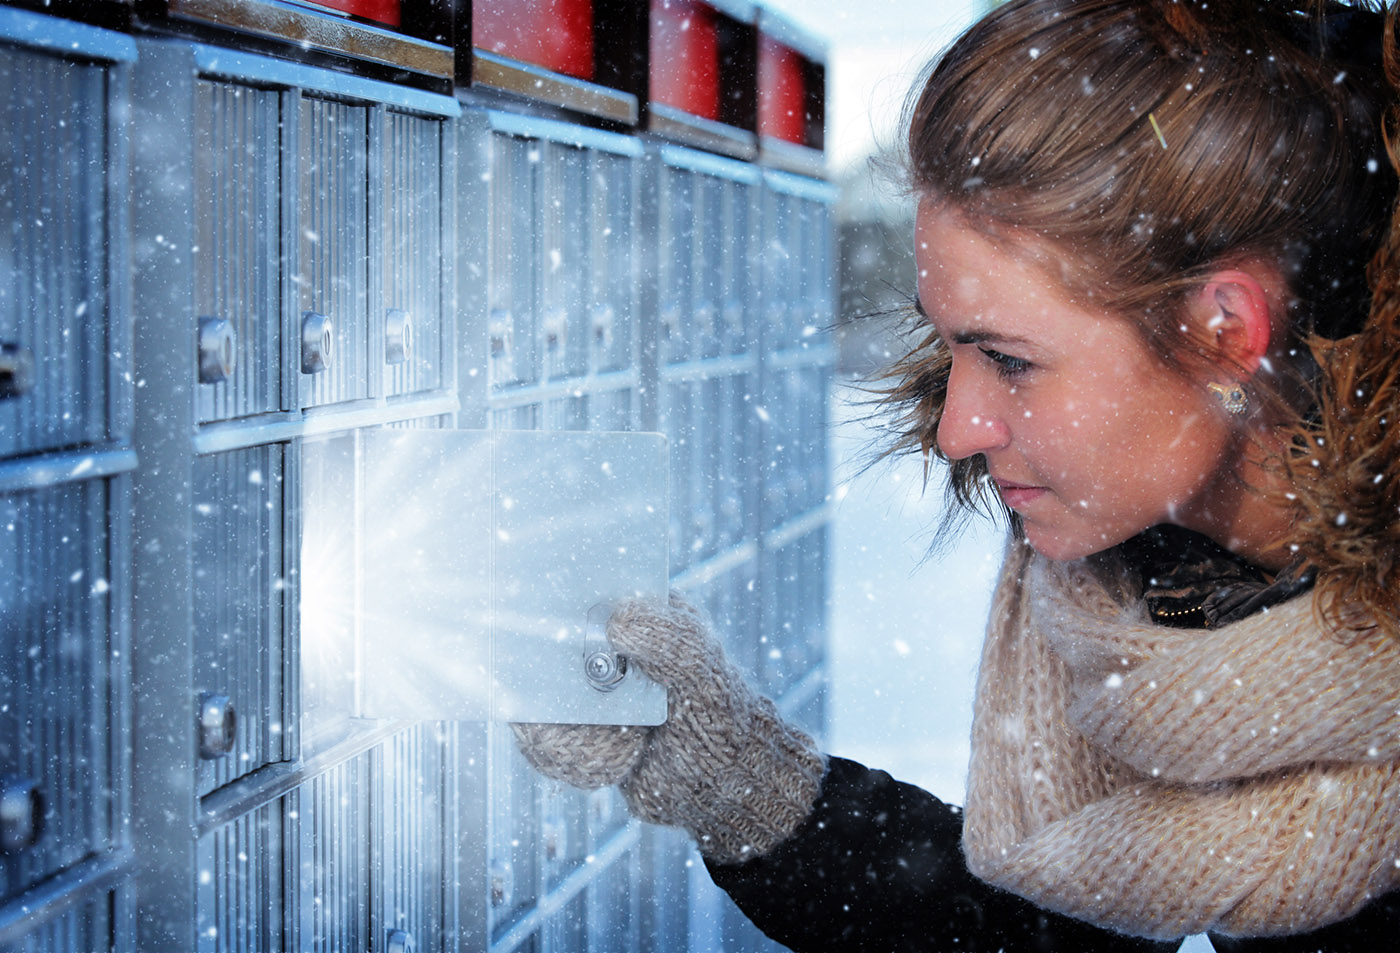 Pretty Woman Looking at Highlighted Mailbox in Winter - Stock Photography